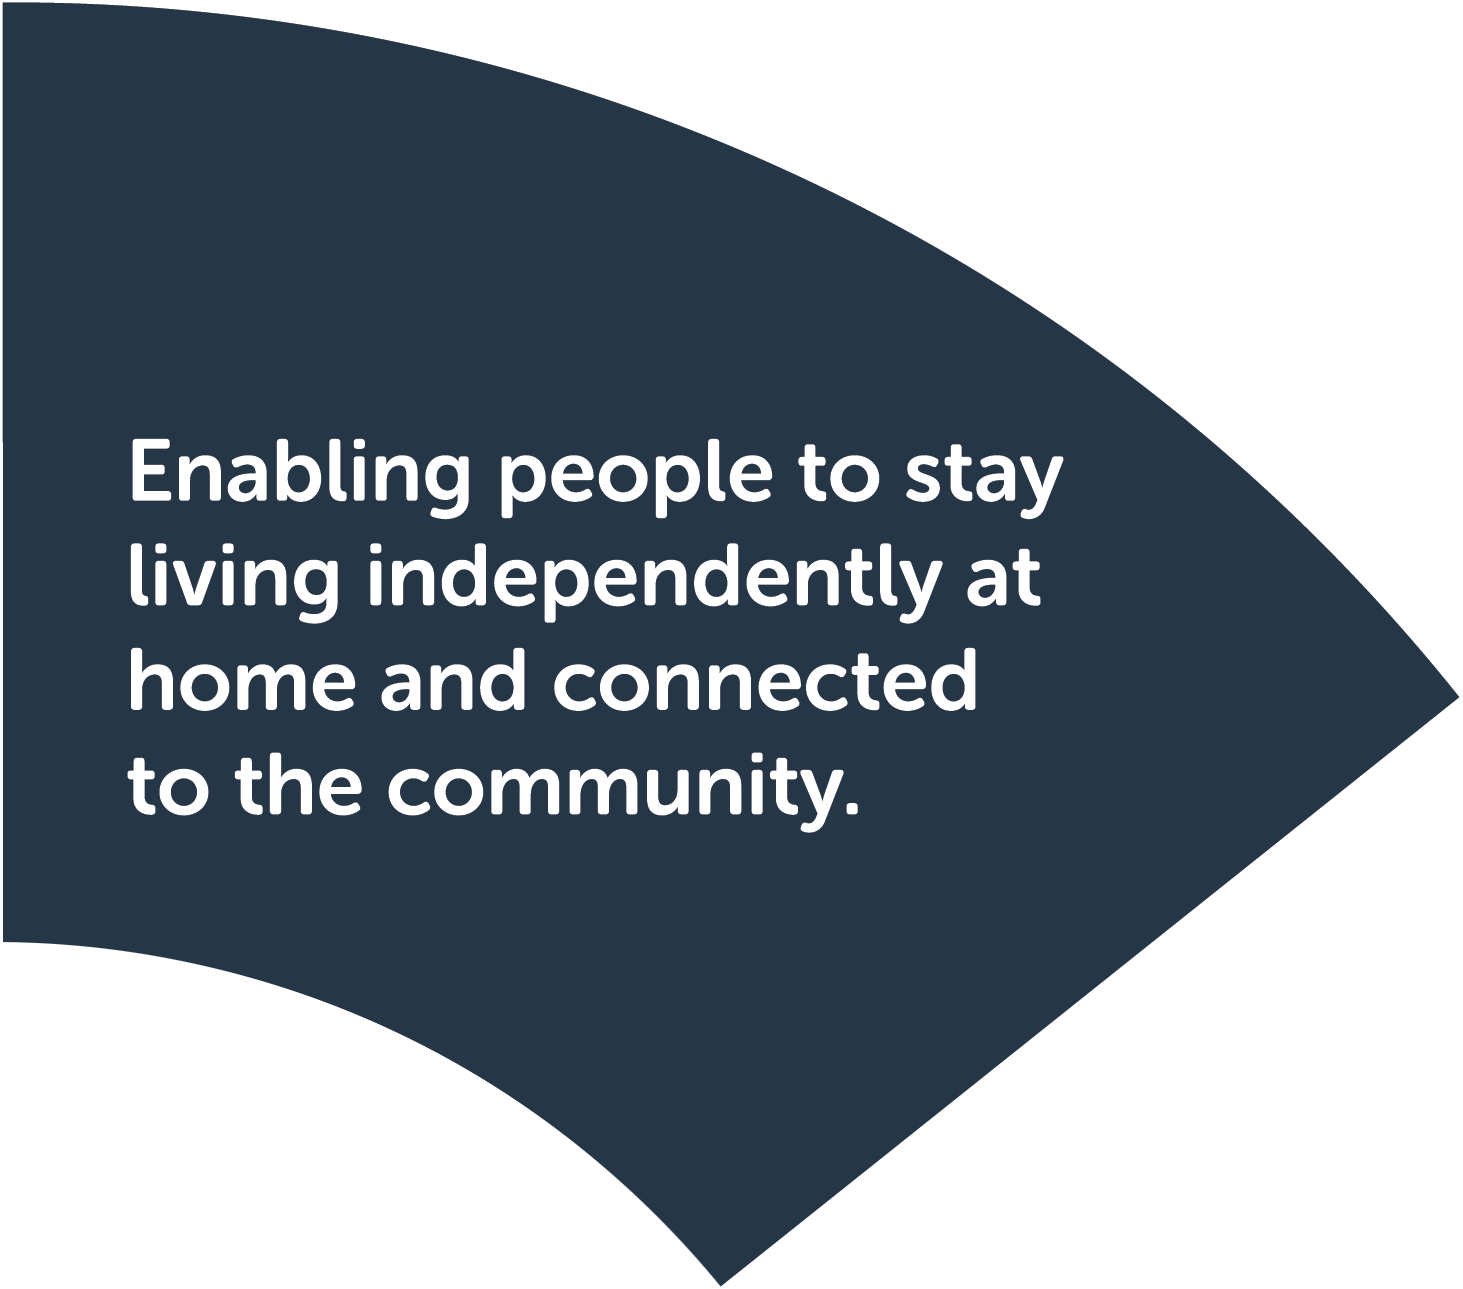 Step 1: Welcome to Care Connect. Enabling people to stay living independently at home and connected to the community.